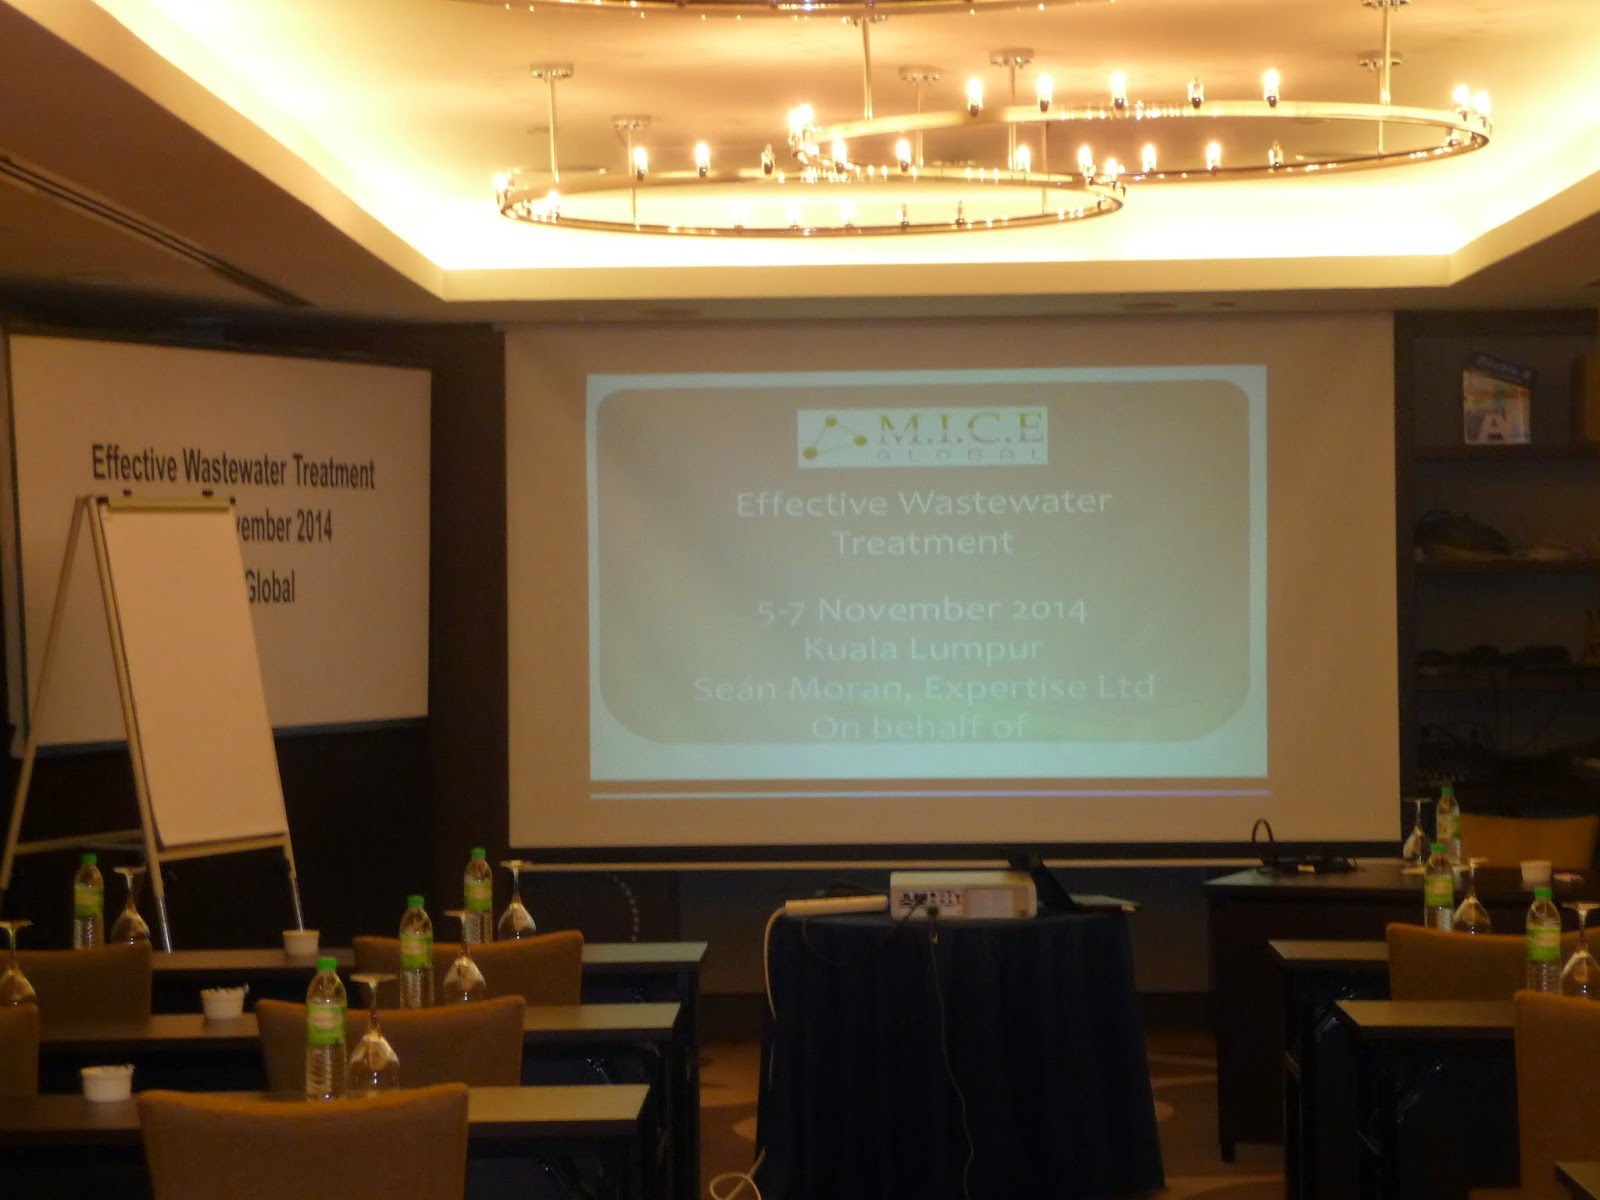 Room set up for Water Treatment Course Kuala Lumpur Malaysia